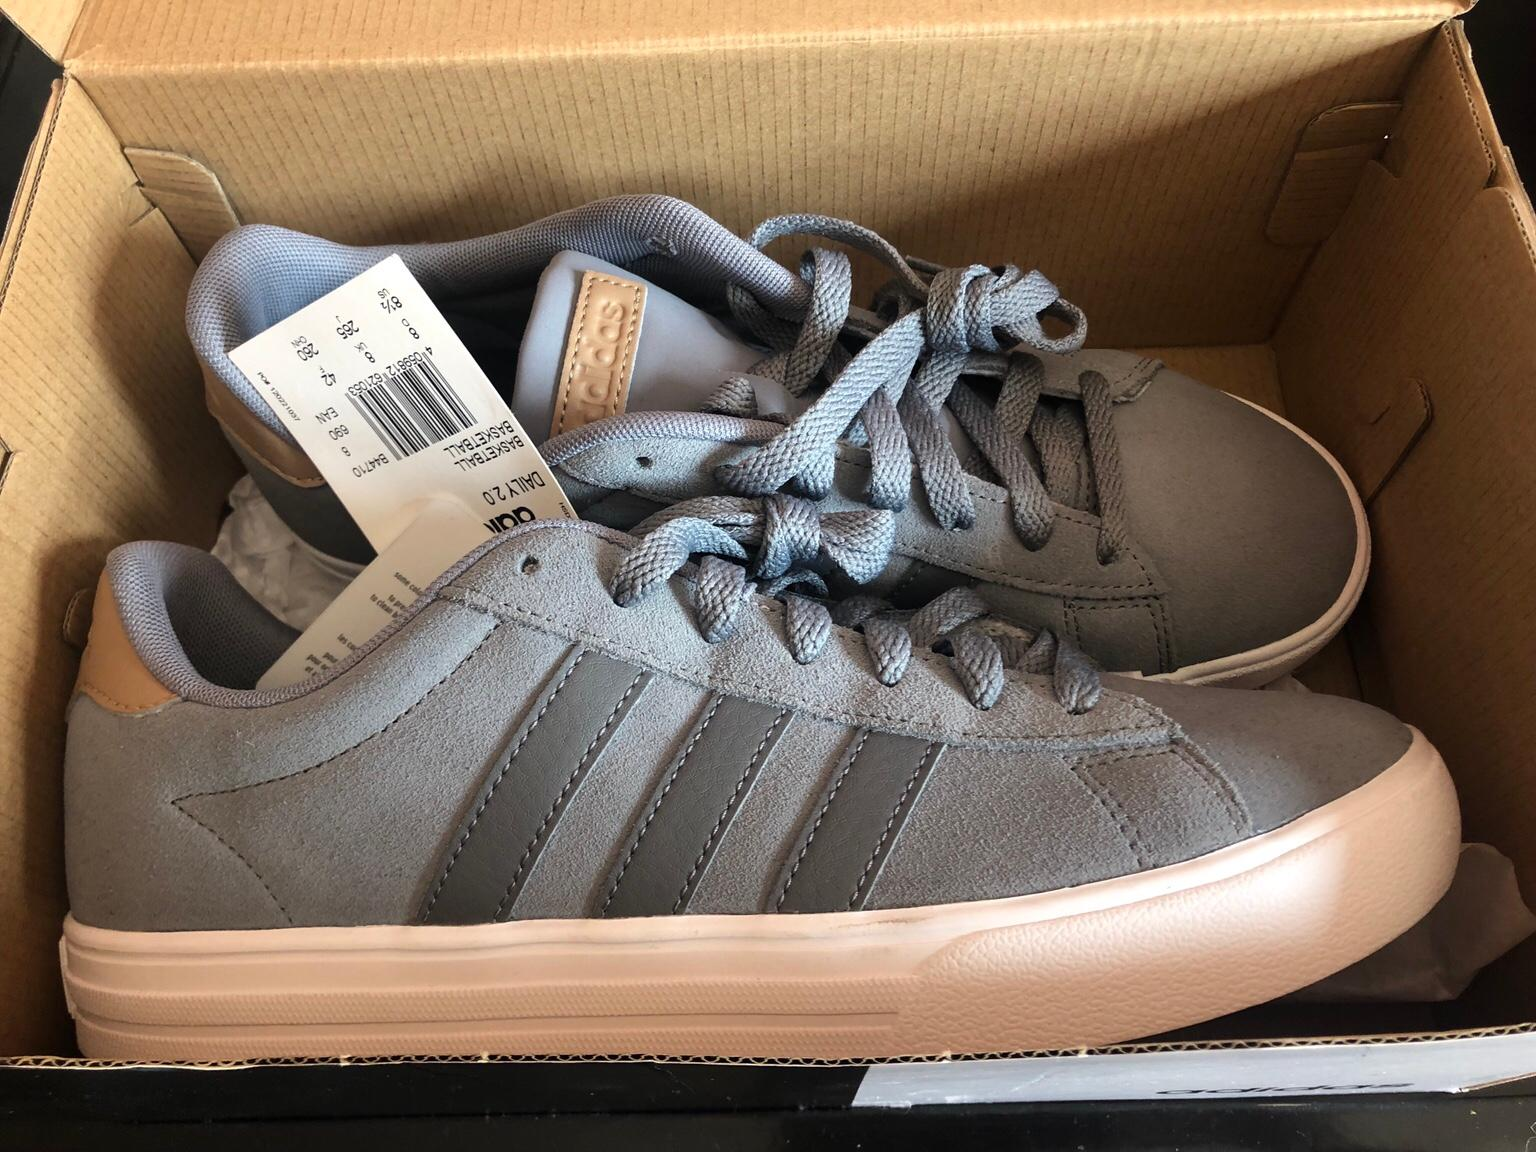 vestido Envío Mediana  Brand new adidas trainers size 8 in HP3 Dacorum for £15.00 for sale | Shpock